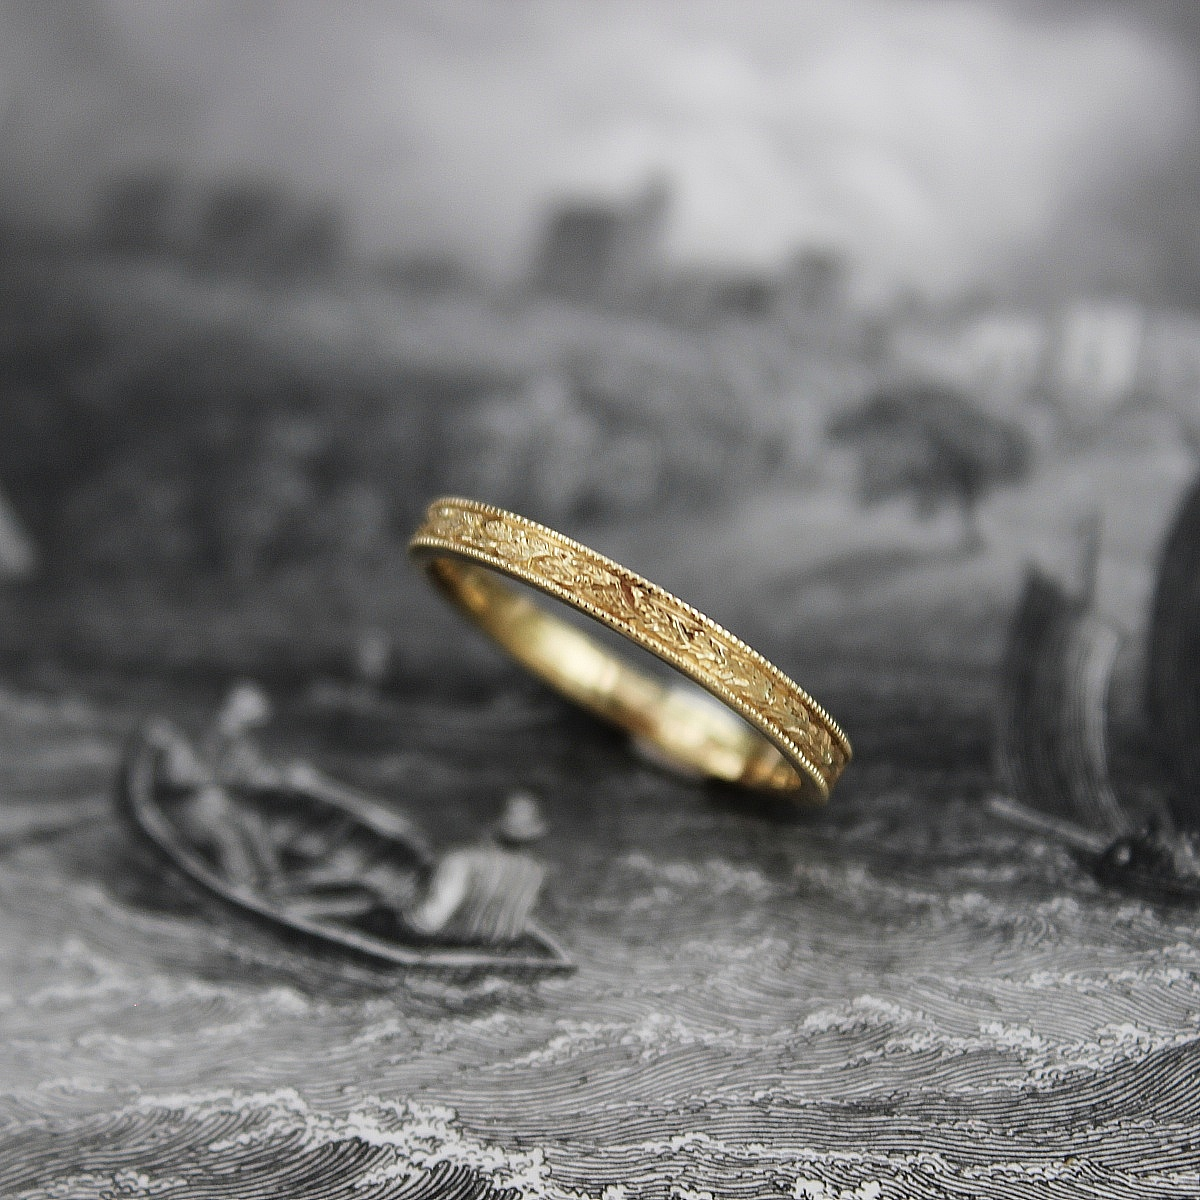 wedding bands unique with rust lifestyle vintage and hello rings walls hands photo overlapping